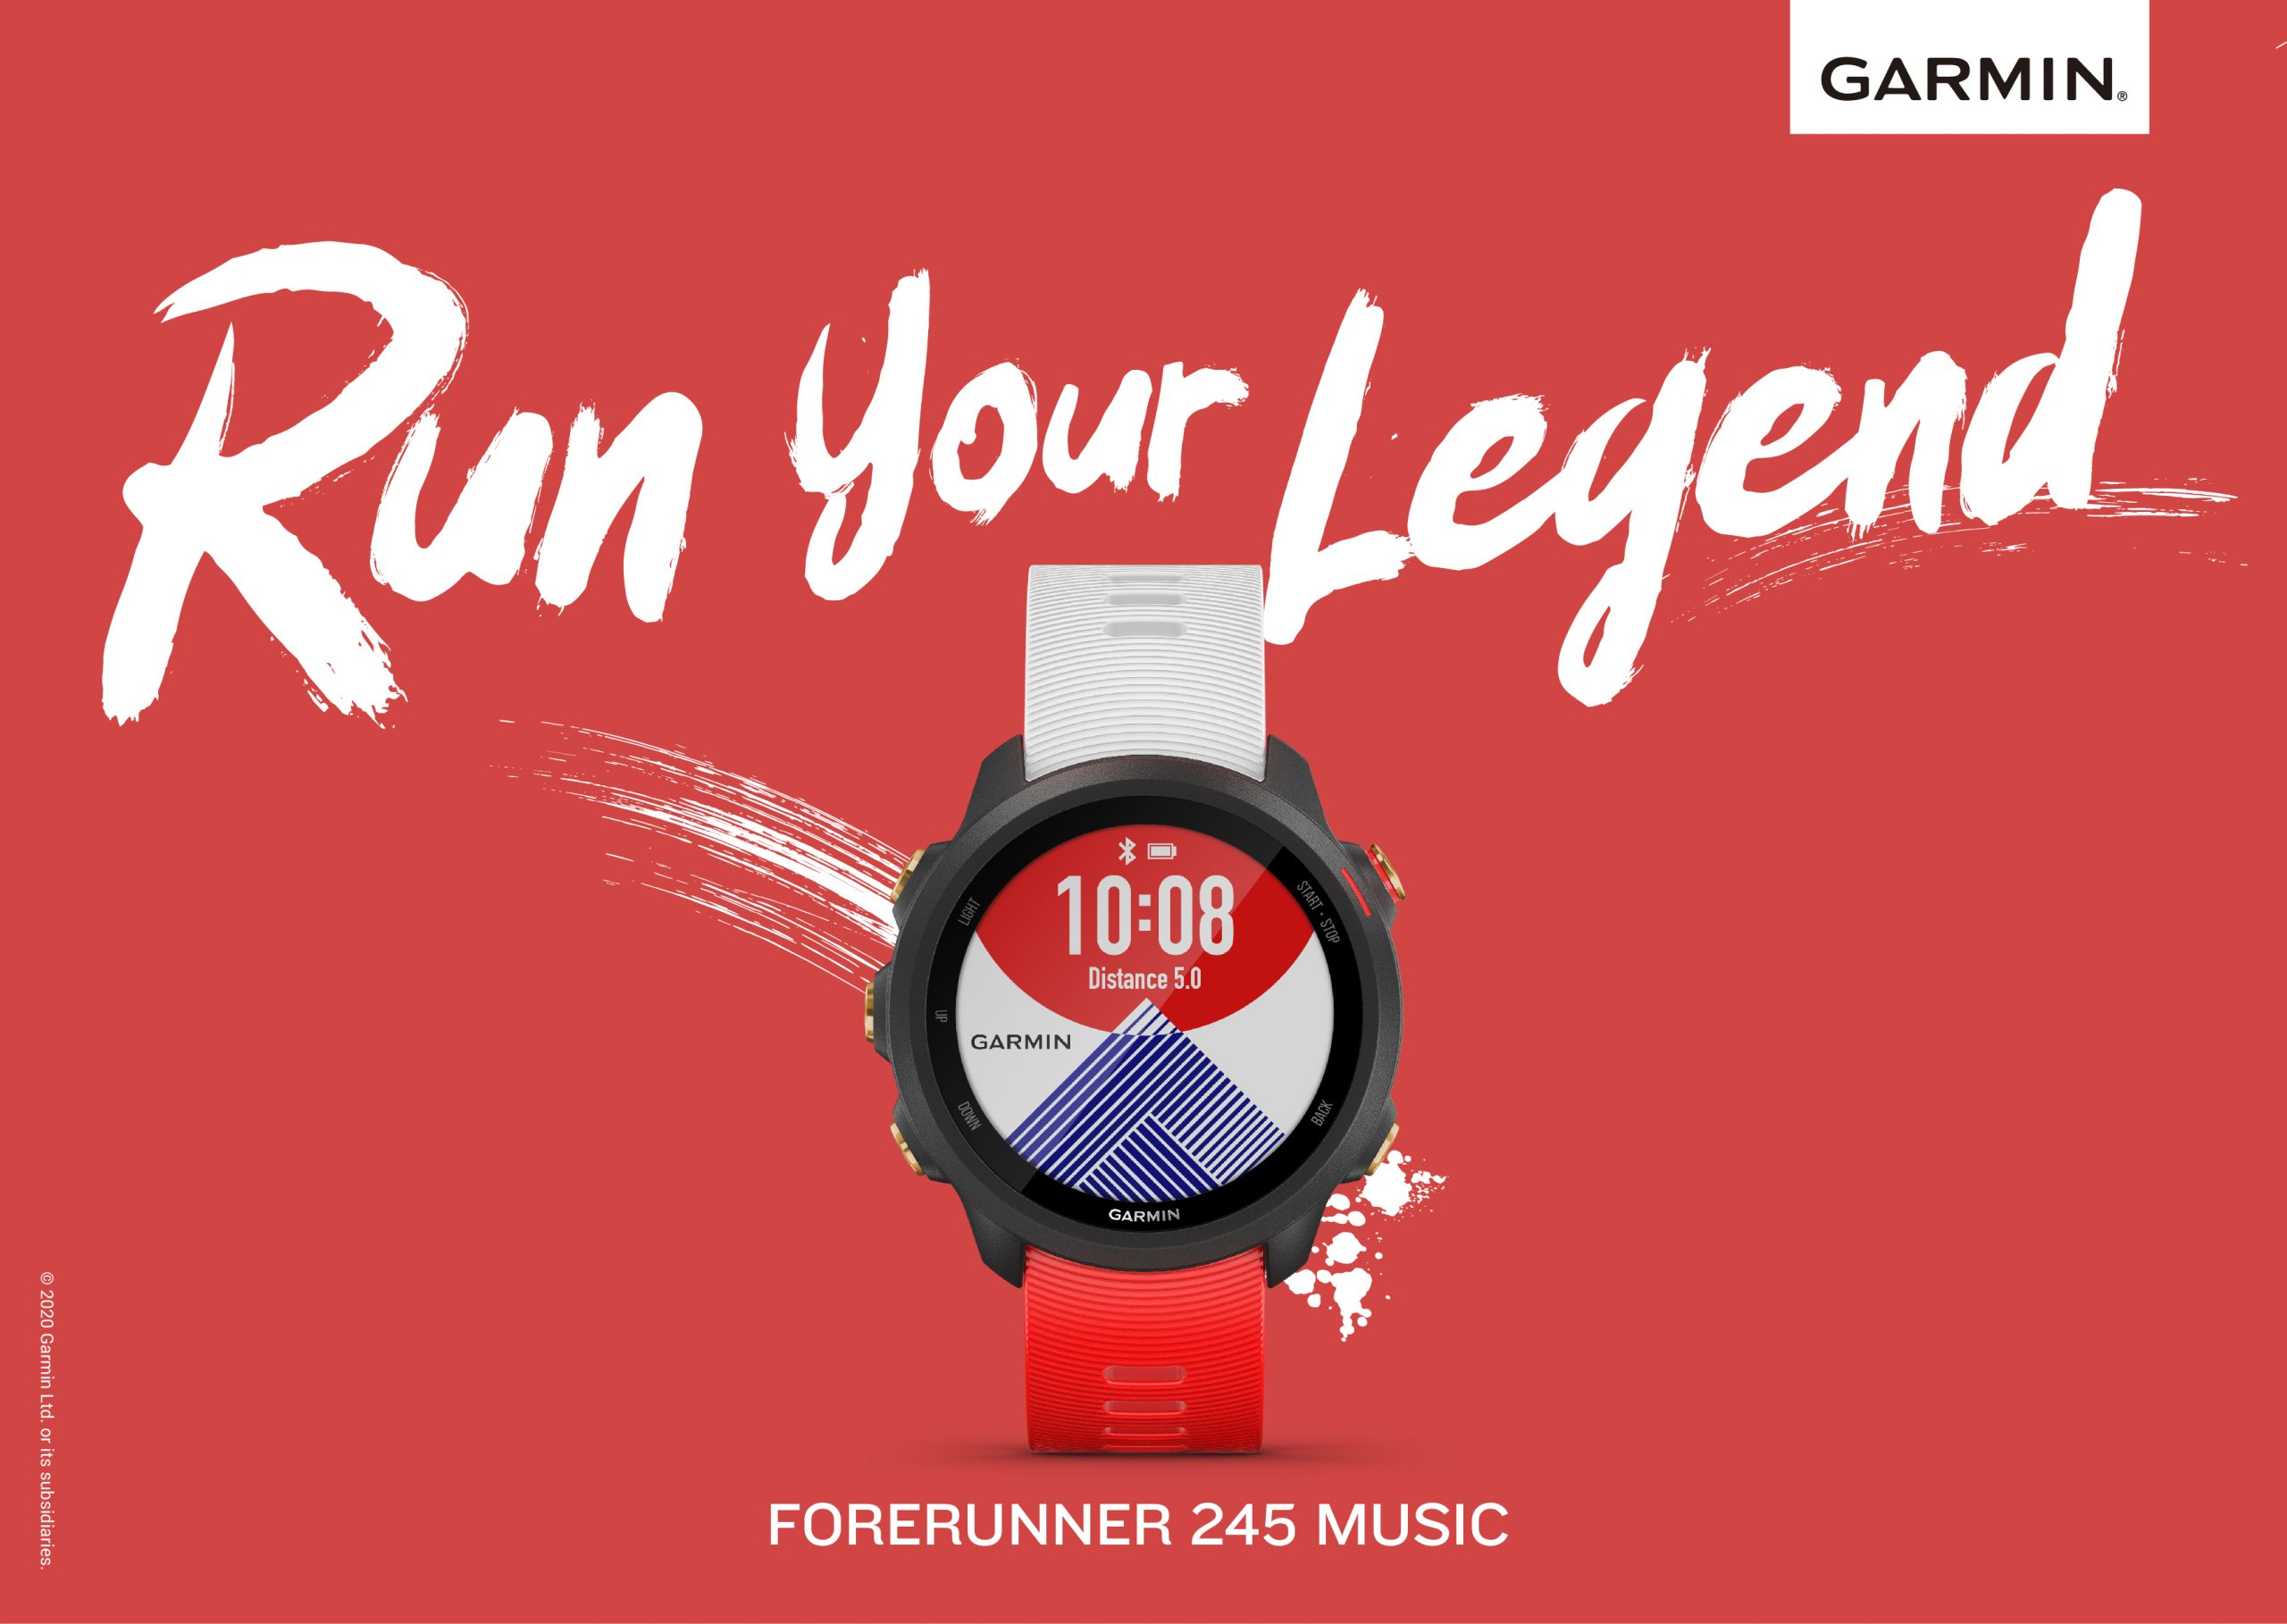 Garmin Forerunner 245 New Music Japan Edition Will Available in Malaysia 19